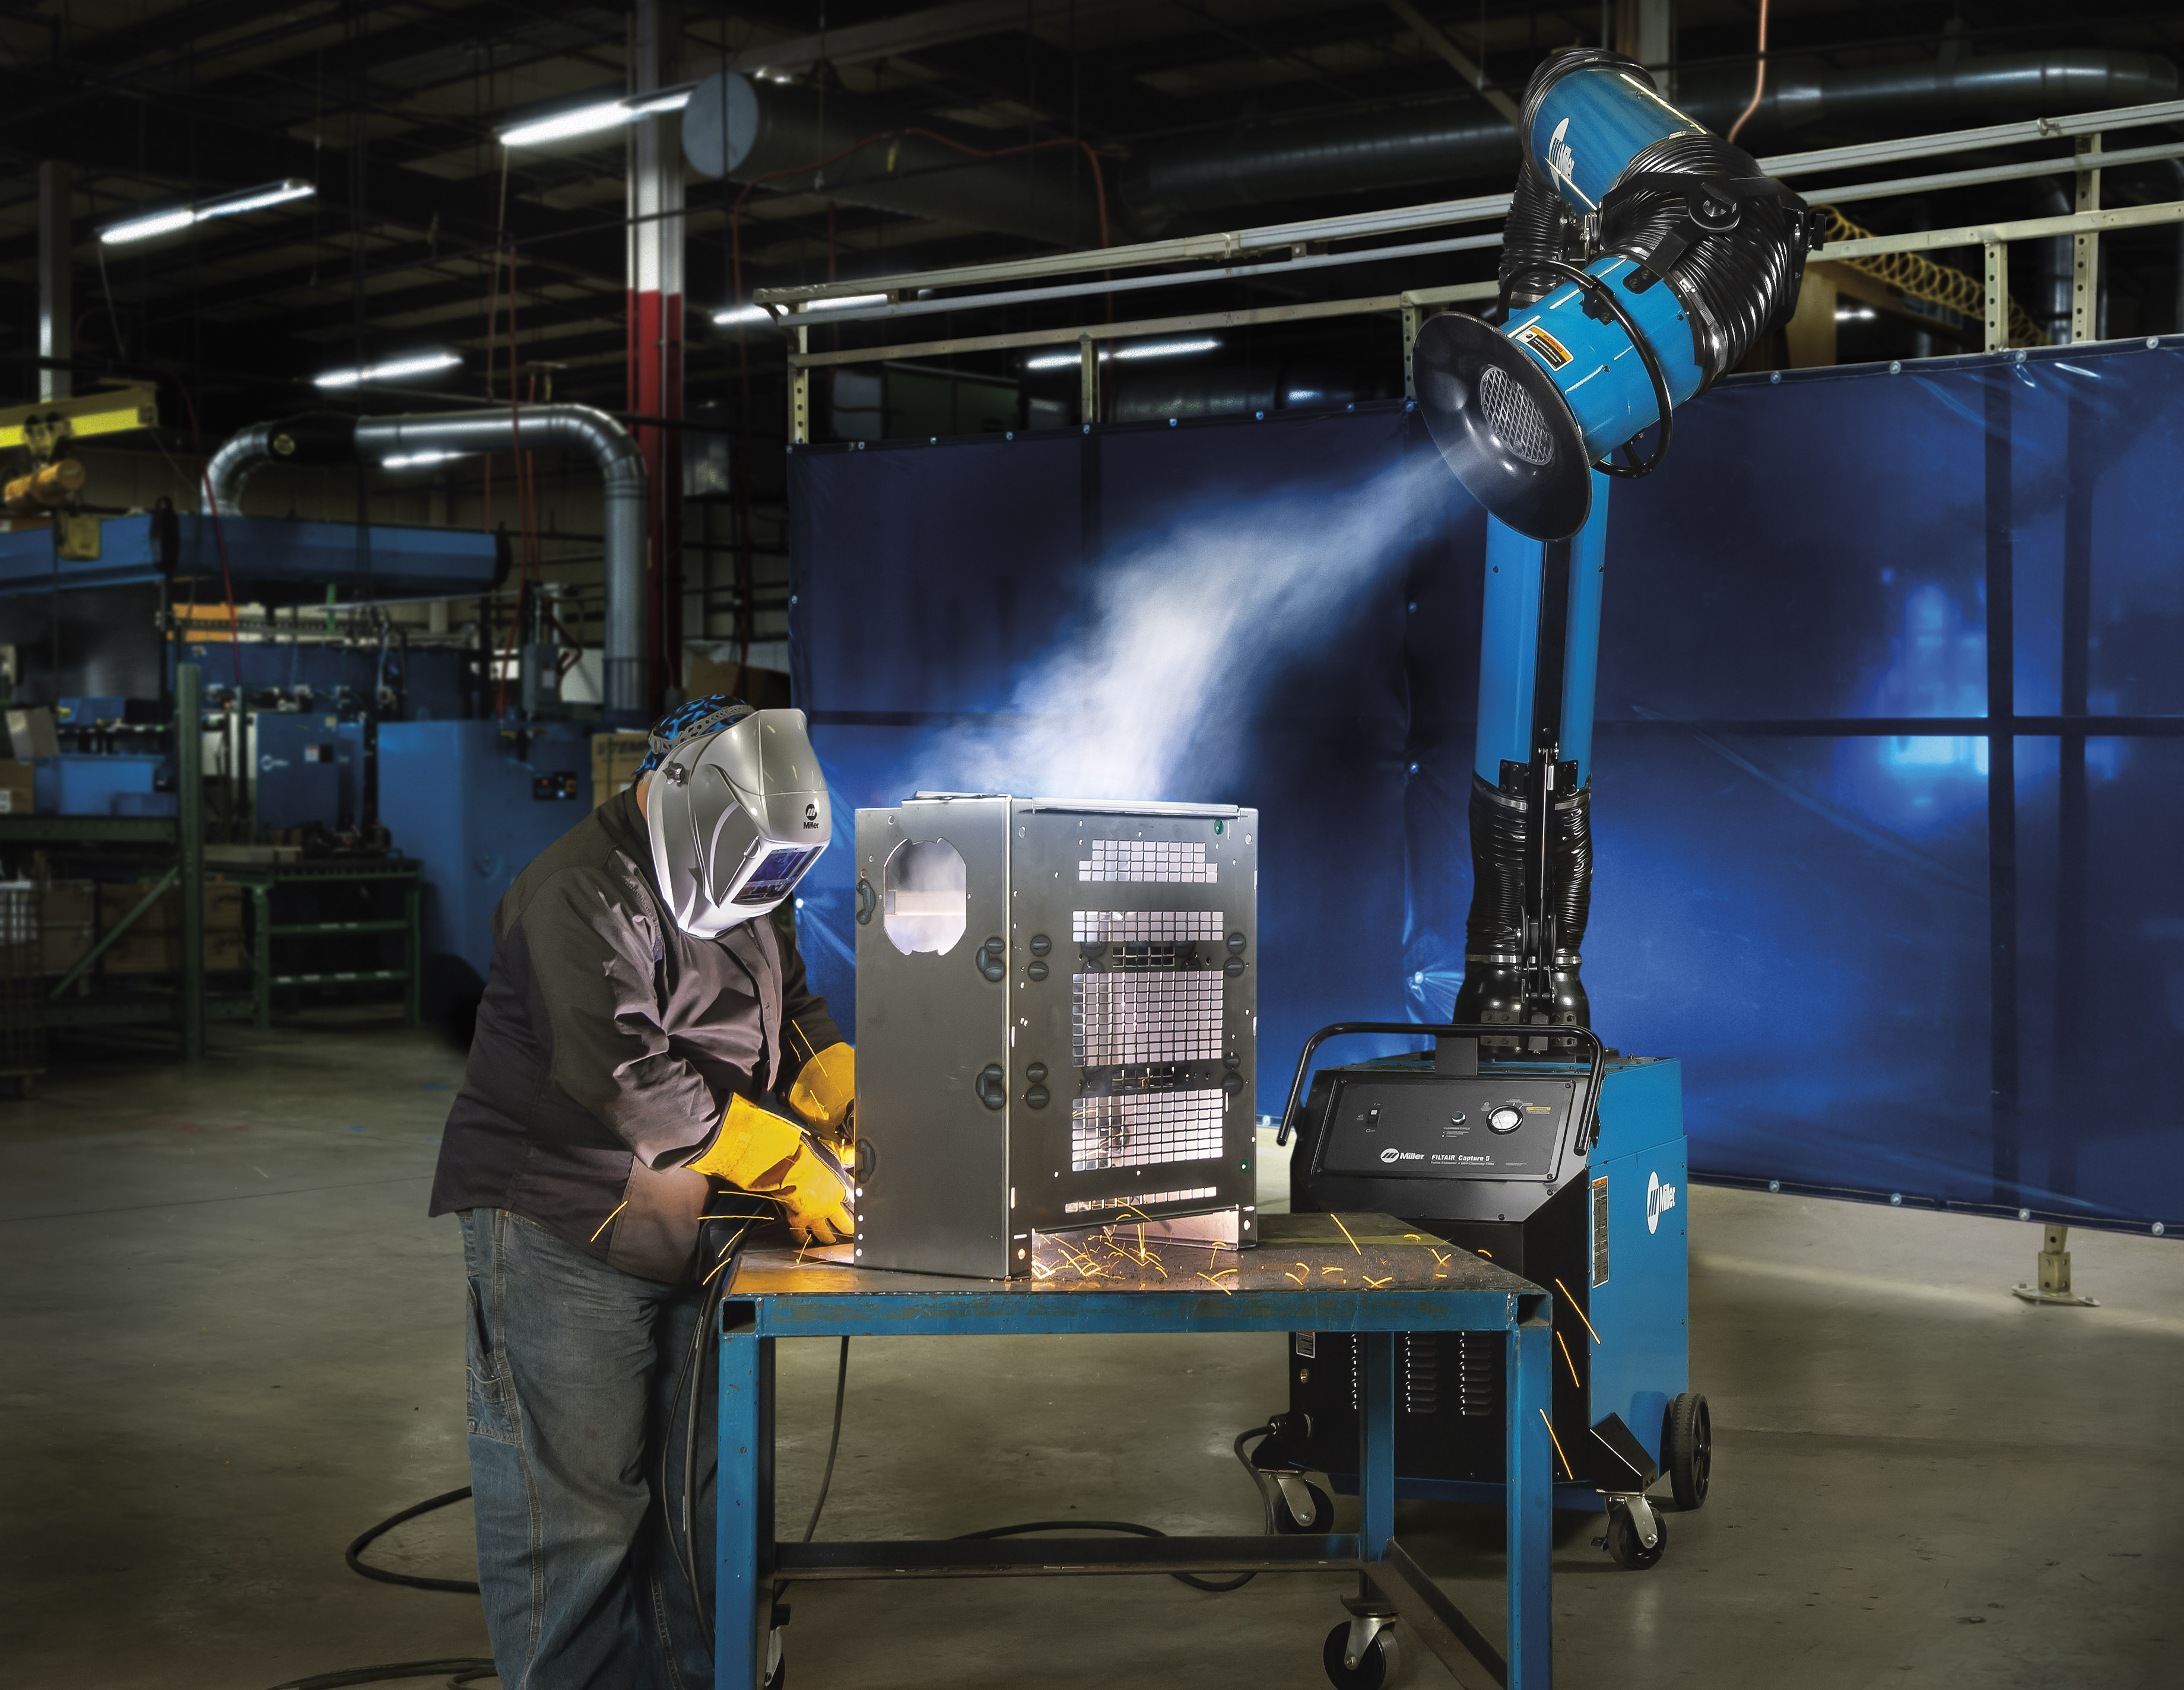 Welding Fume Extraction Systems : New technology expands work envelope when using fume